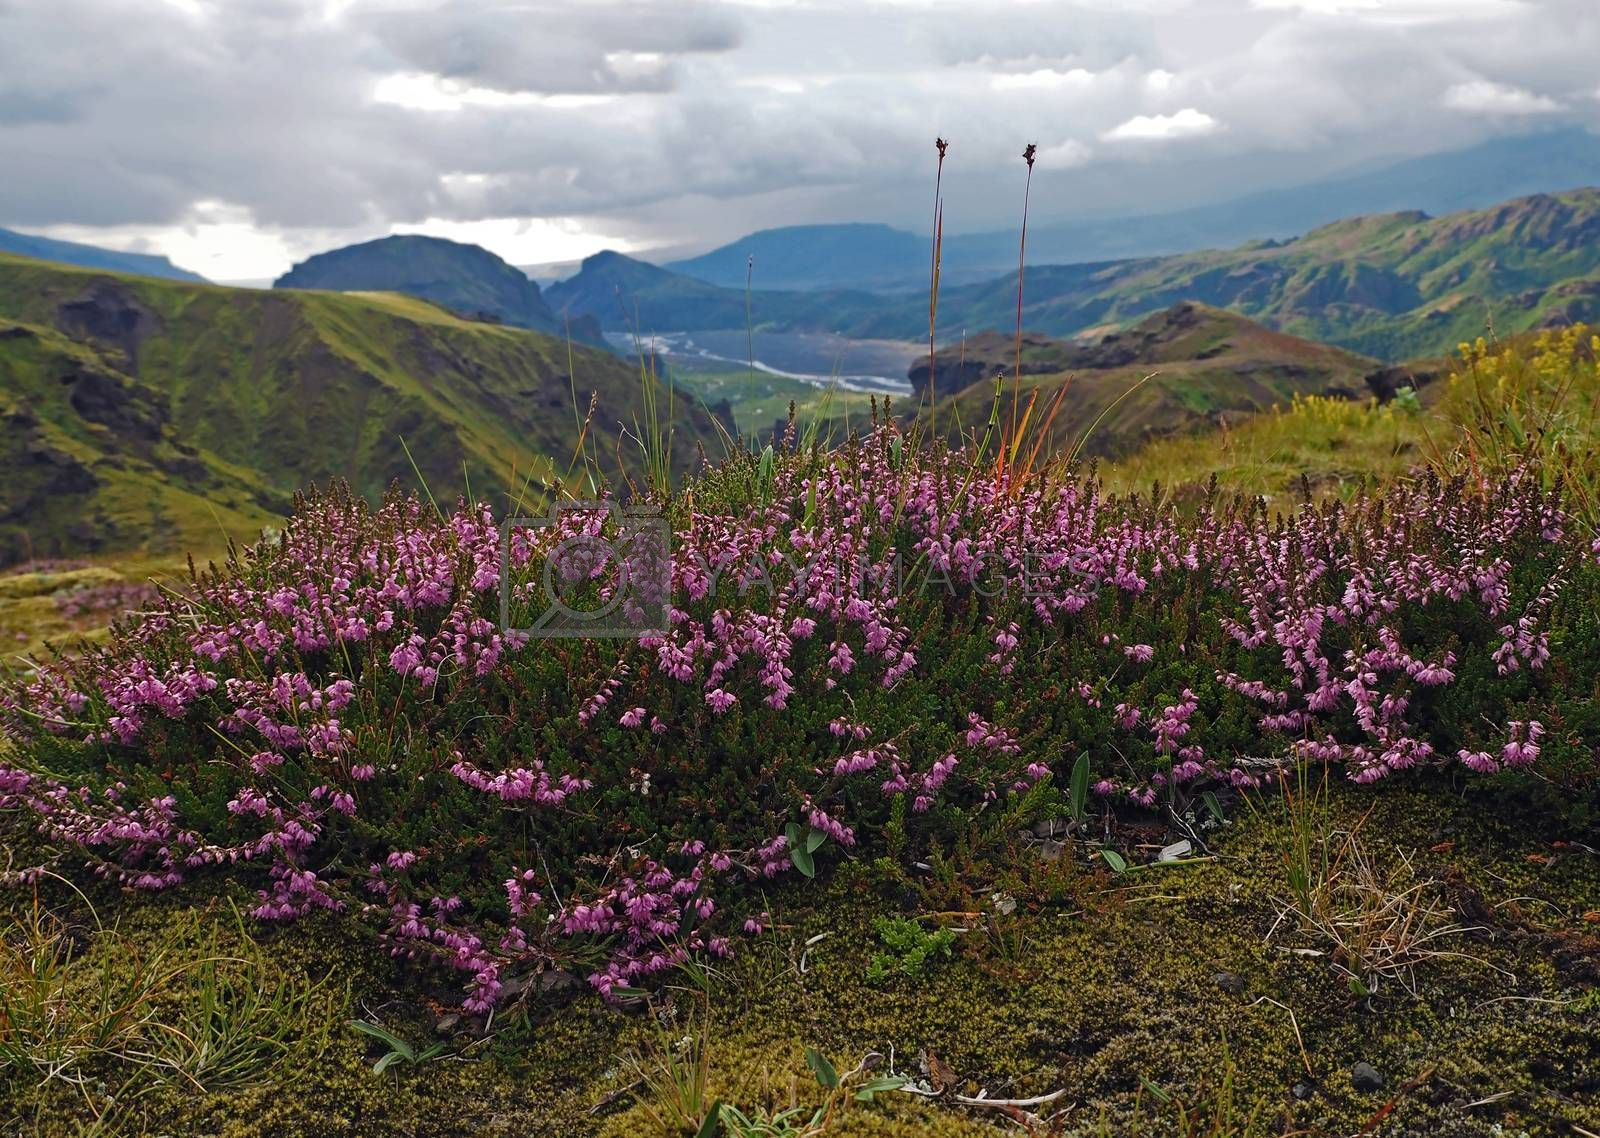 blooming pink heather briar flower with wonderfulview on valley in Godaland Thorsmork with krossa river in Iceland and green moss covered mountains